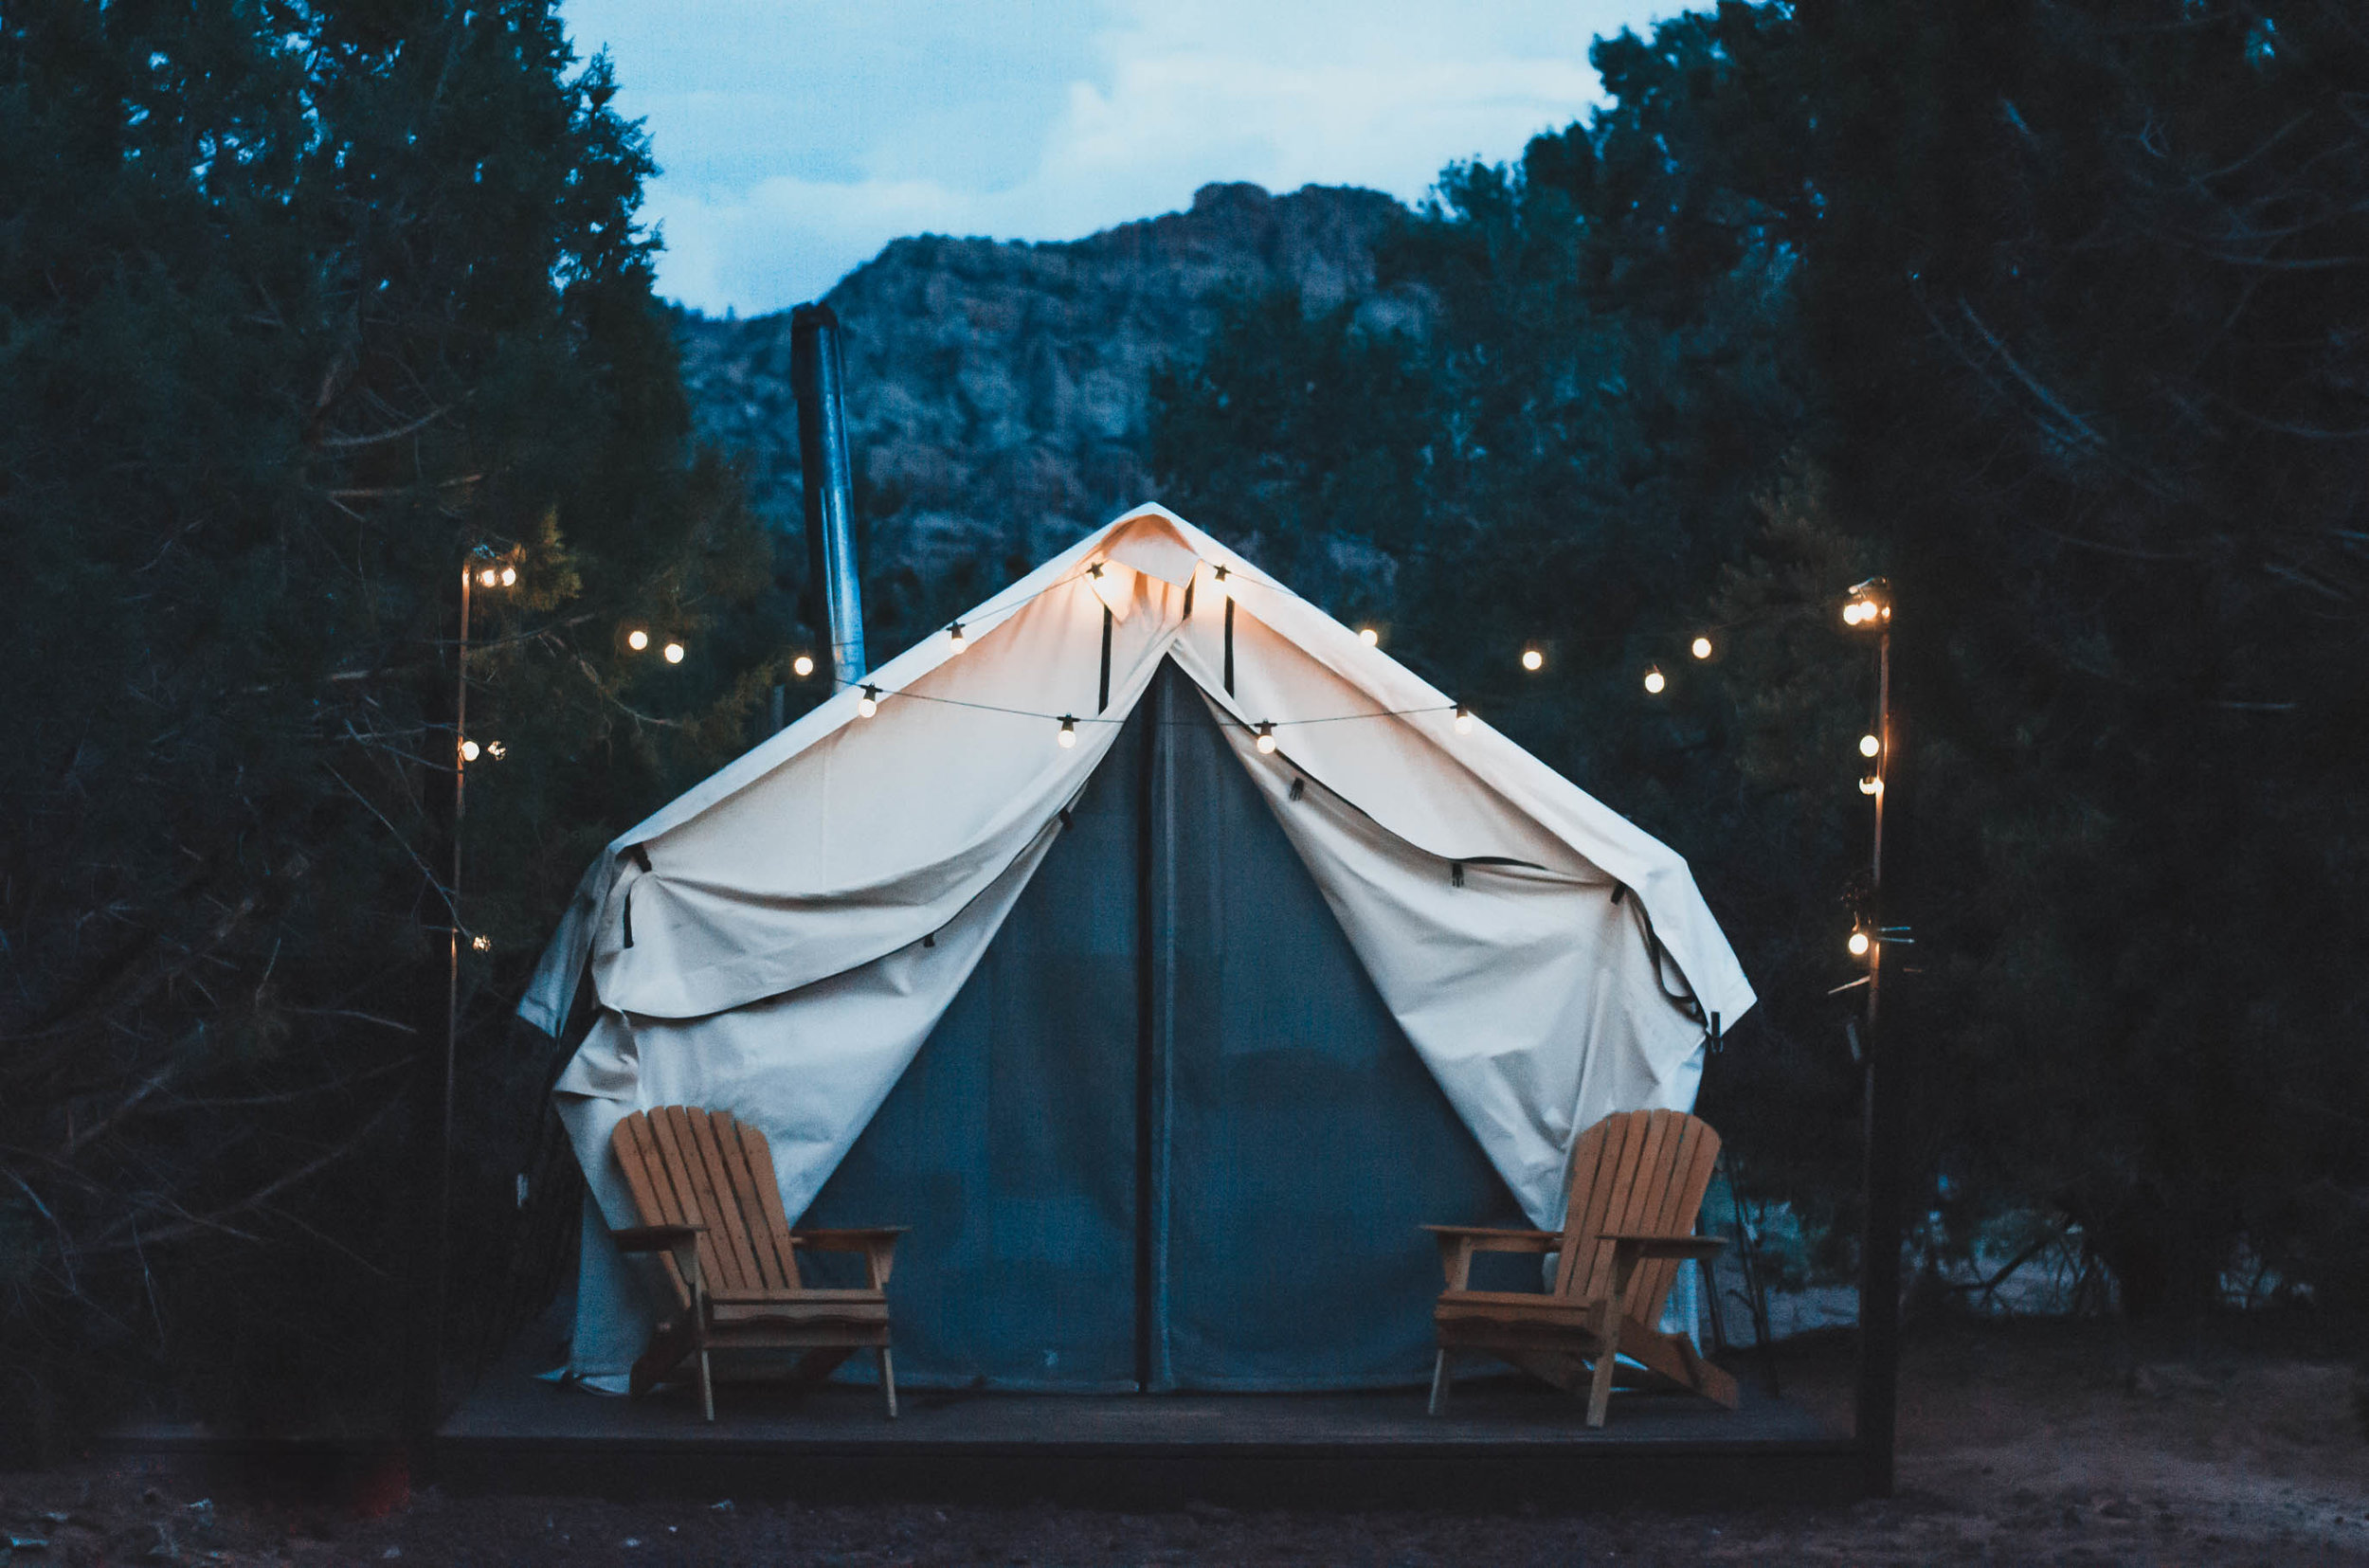 A peaceful night outside our glamping tent near Zion